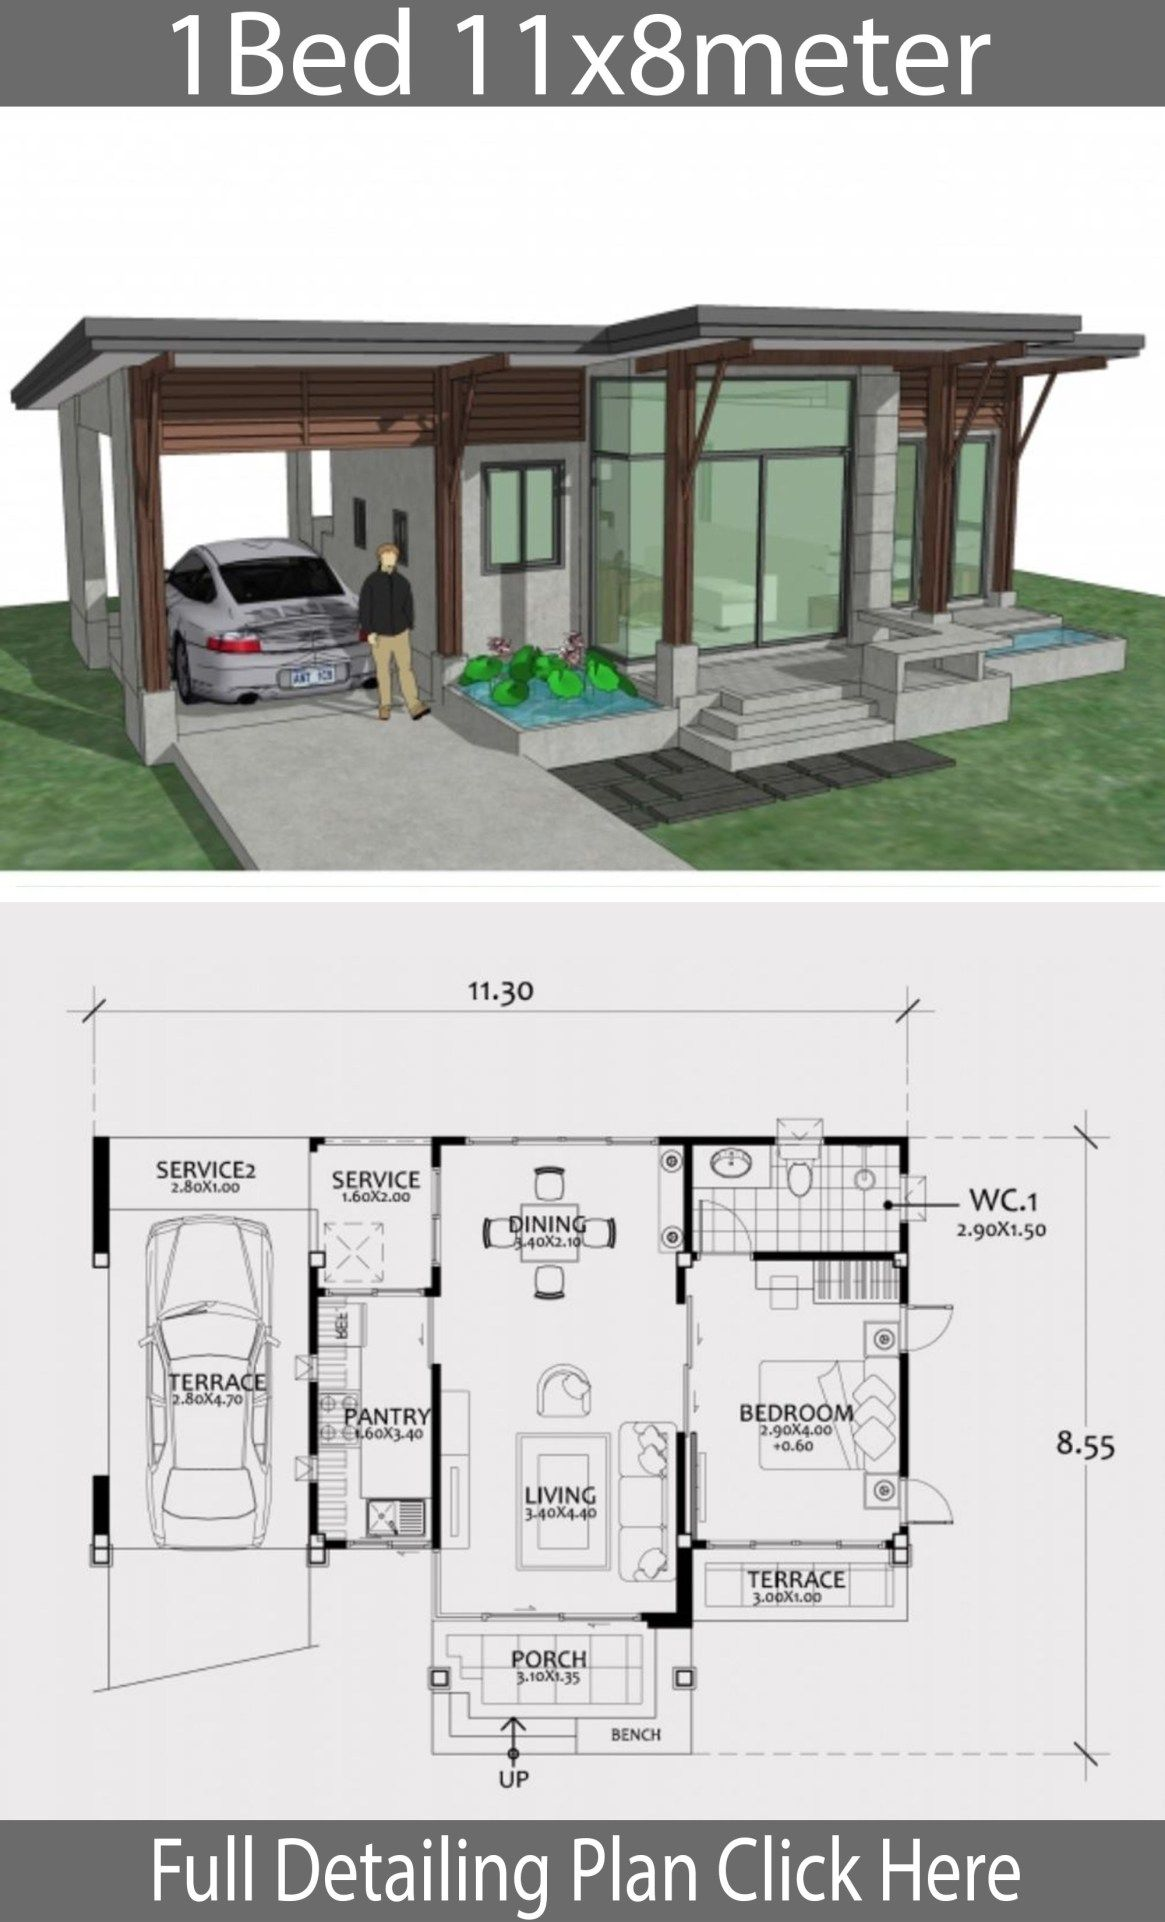 Home Design Plan 11x8m With One Bedroom Home Design With Plansearch House Plans Home Design Plan One Bedroom House Plans